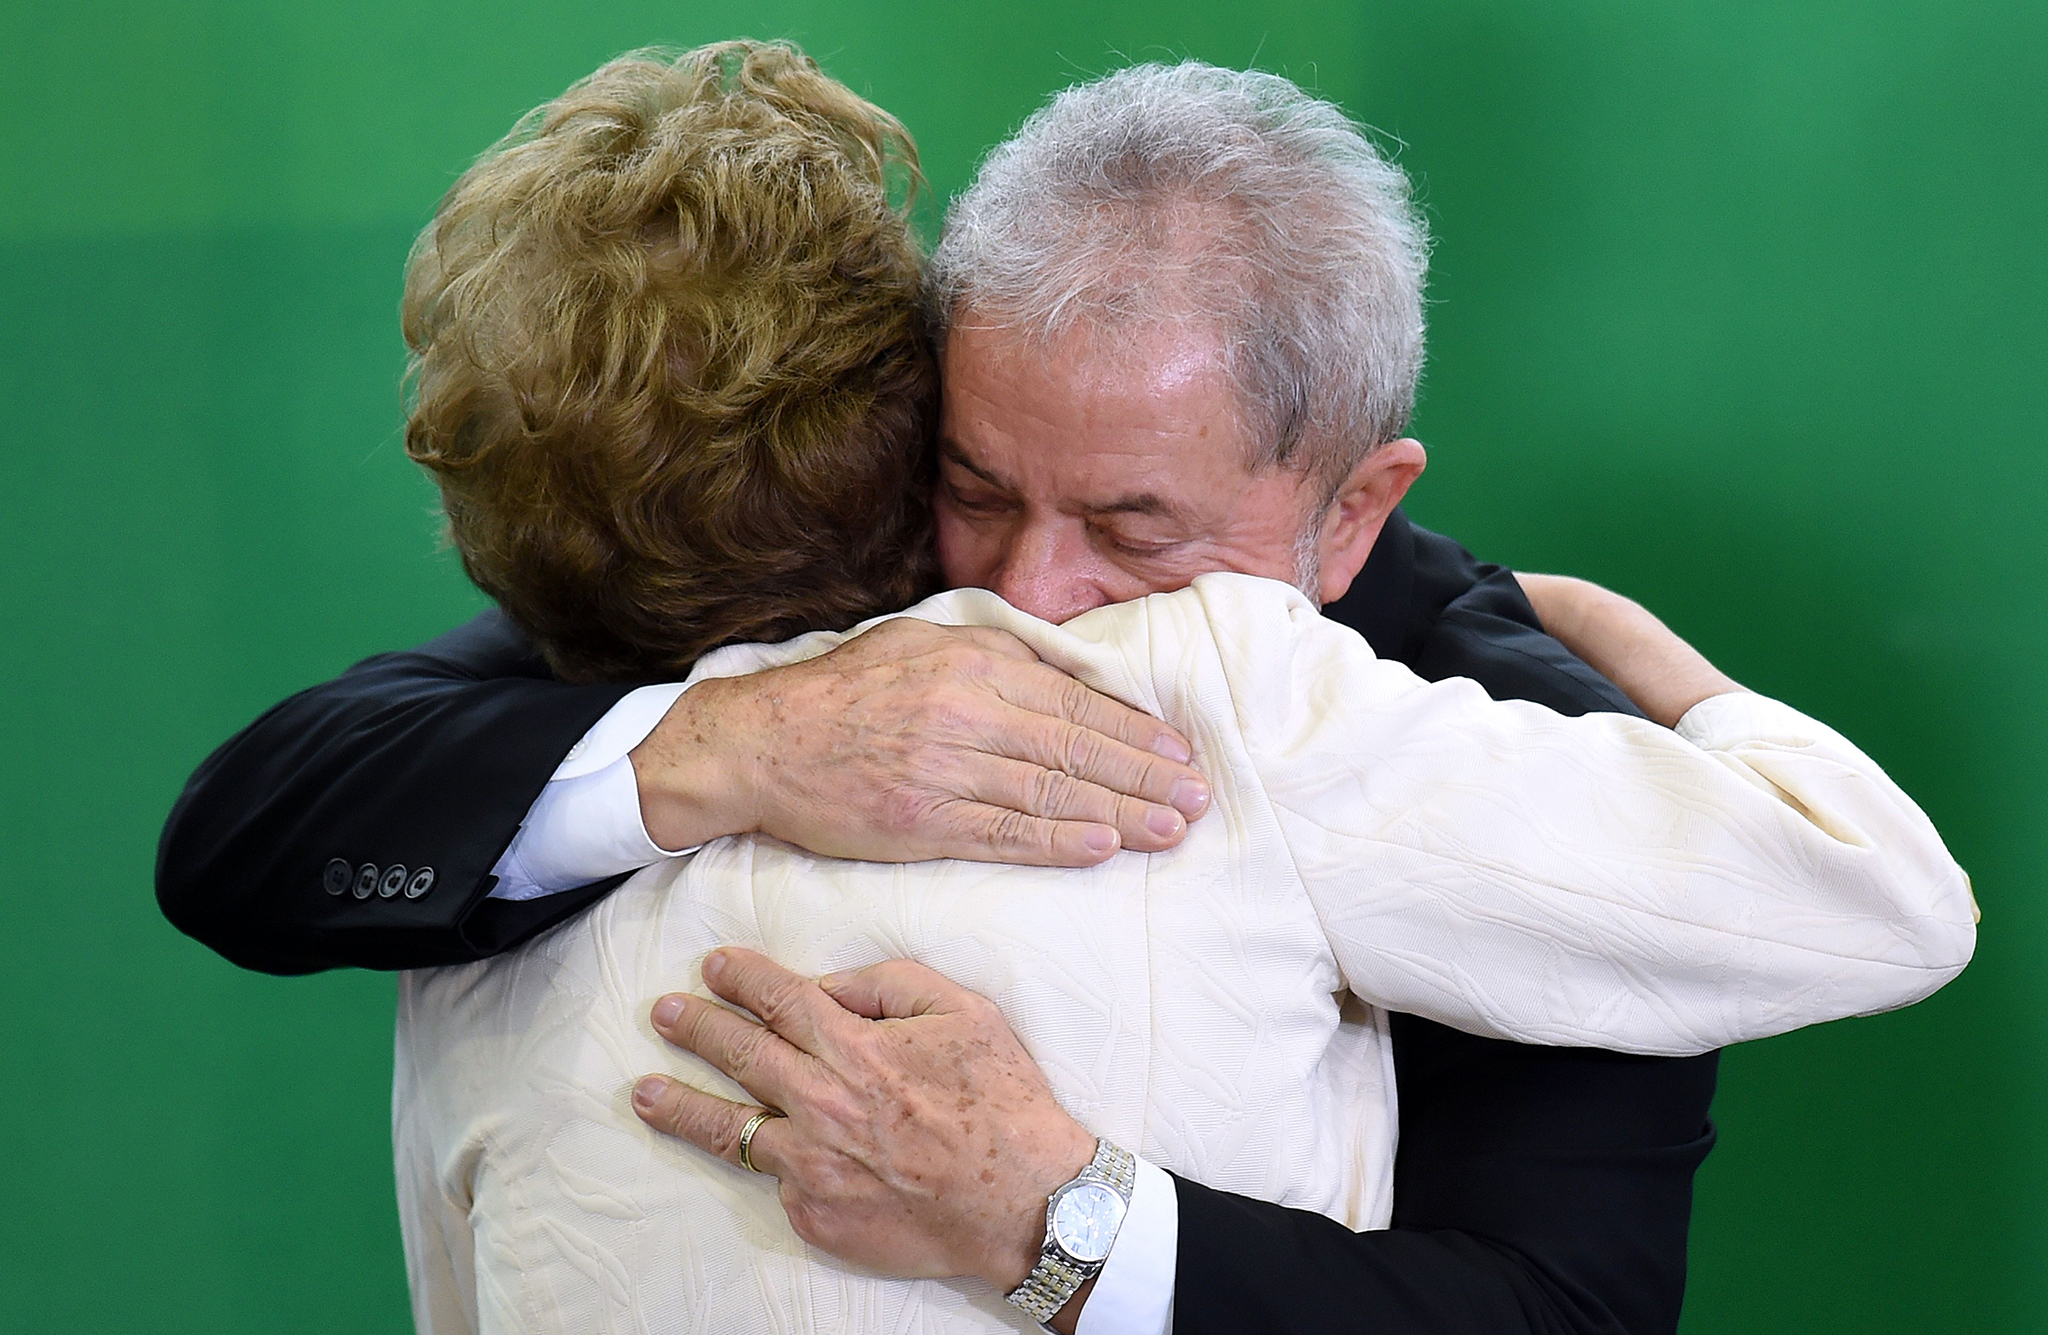 Former Brazilian president Luiz Inacio Lula da Silva hugs Brazilian president Dilma Rousseff after he swore as chief of staff in Brasilia